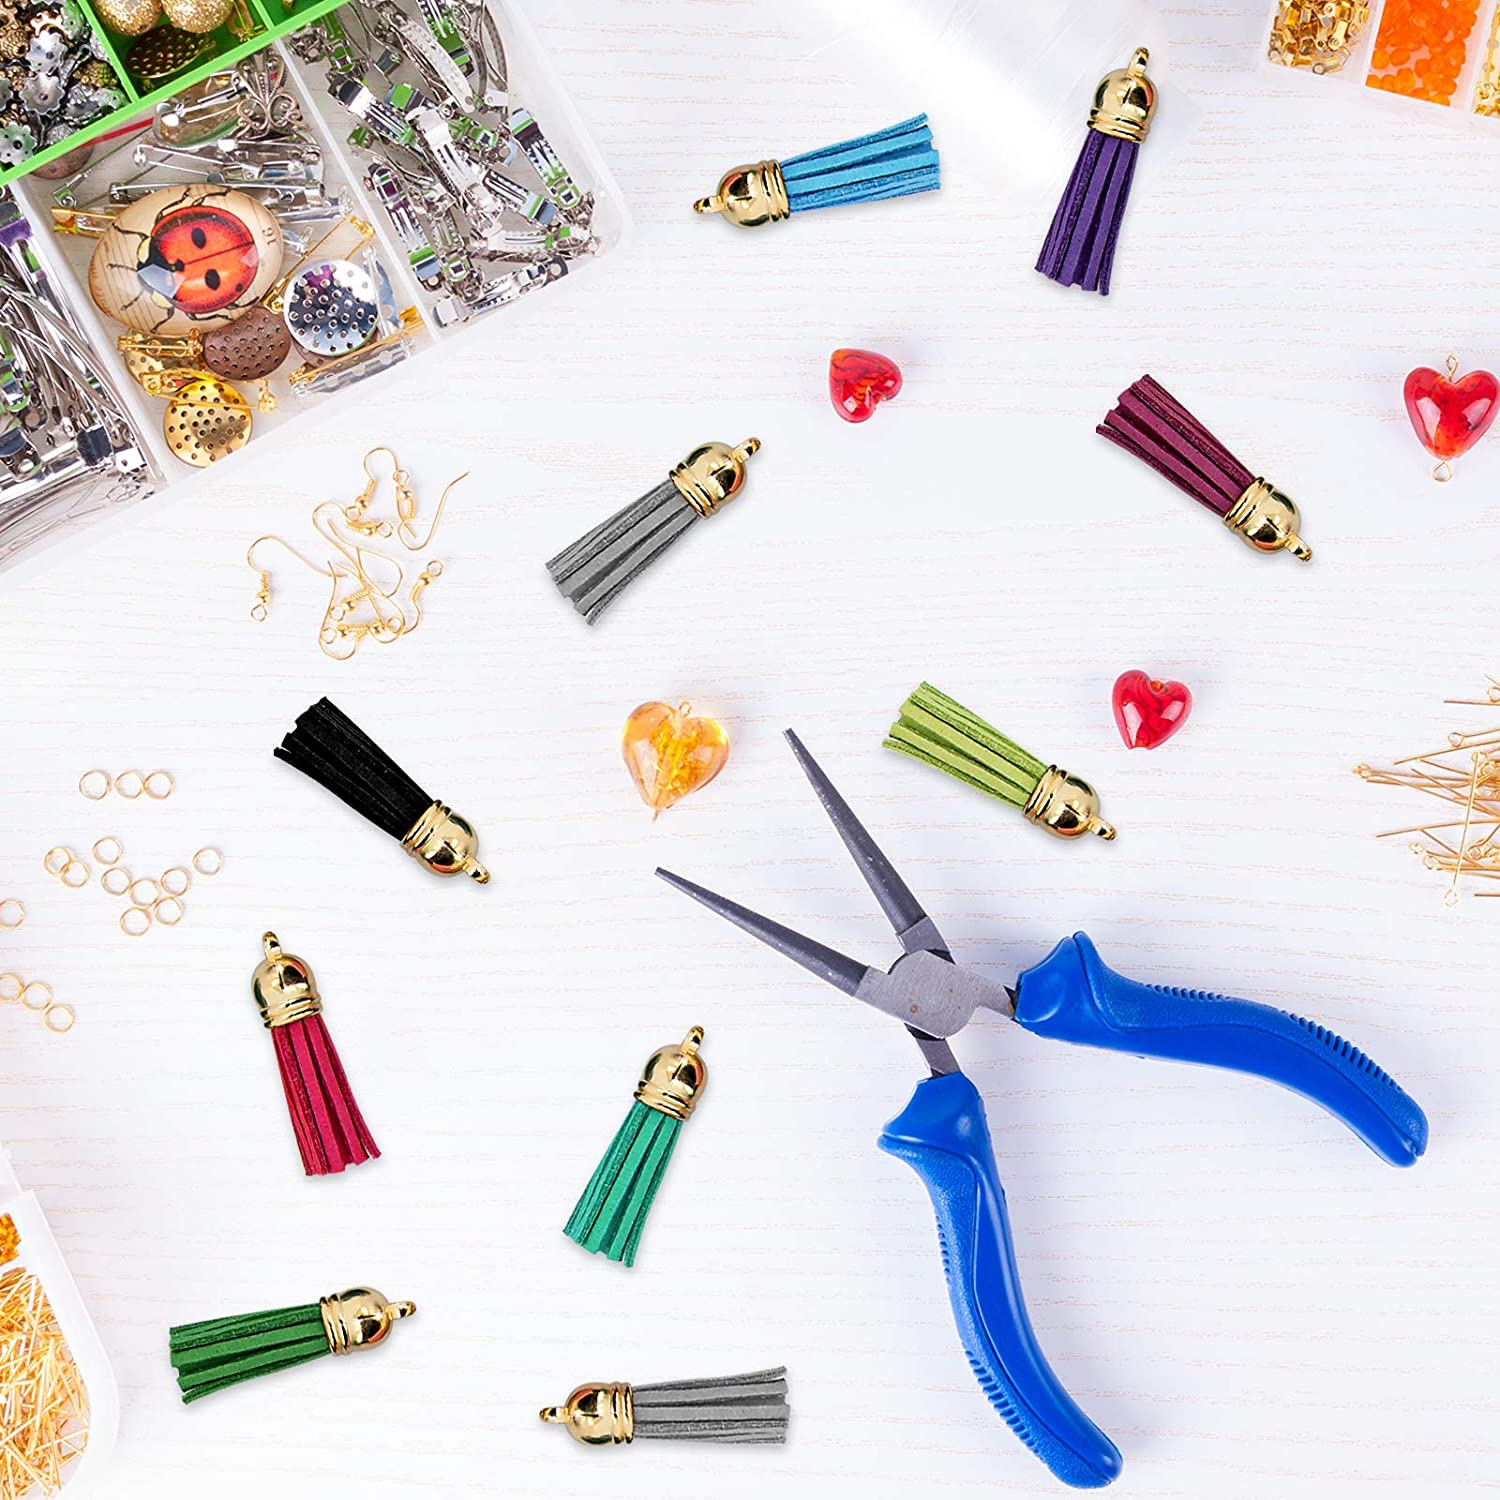 Gold and Silver Duufin 350 Pcs Key Chain Rings Keychain Tassels Set with 50 Pcs Craft Tassels 50 Pcs Keychain Hooks 50 Pcs Key Chain Rings 100 Pcs Jump Ring and 100 Pcs Screw Eye Pins for Crafts